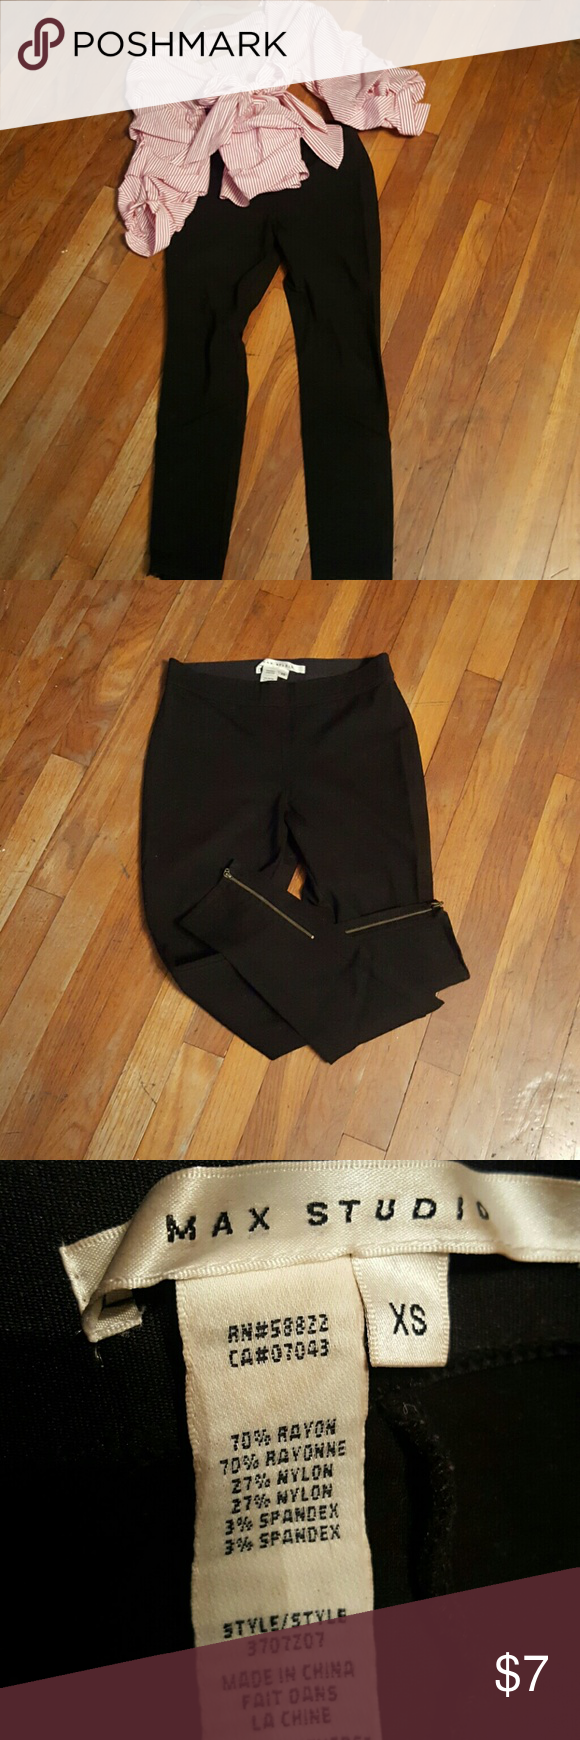 Max Studio Black Leggings Sexy black leggings size XSMALL w/ zipper ankles Max Studio Pants Leggings